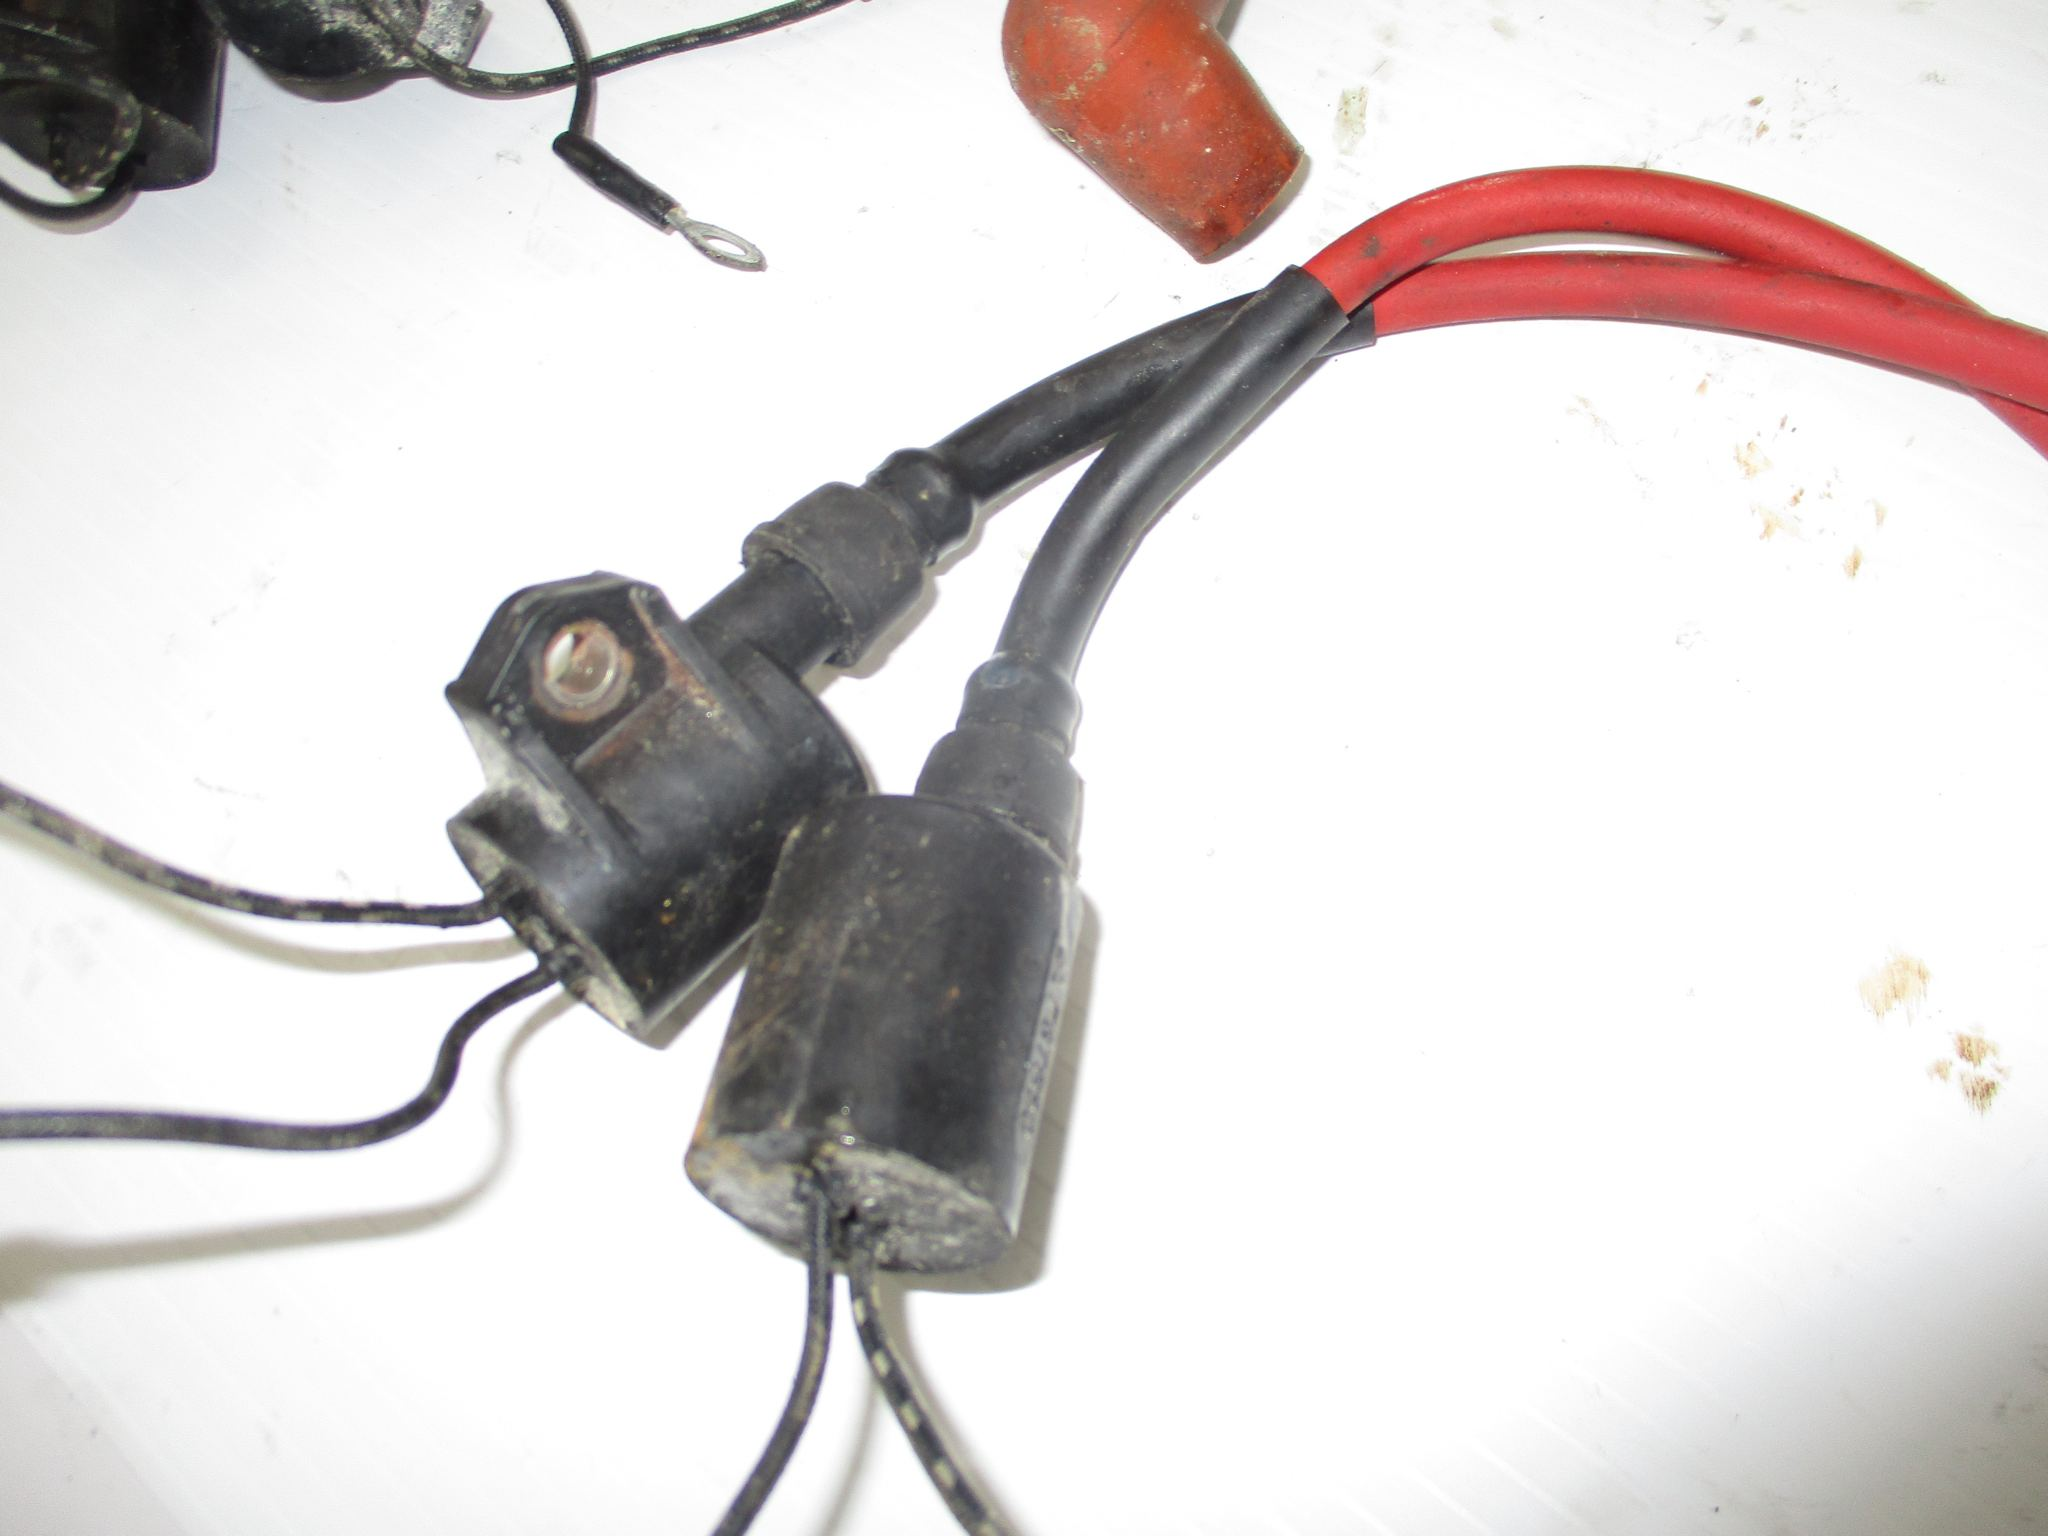 2002 YAMAHA 150 HP OX66 SALTWATER SERIES IGNITION COIL #61A-85570-00-00